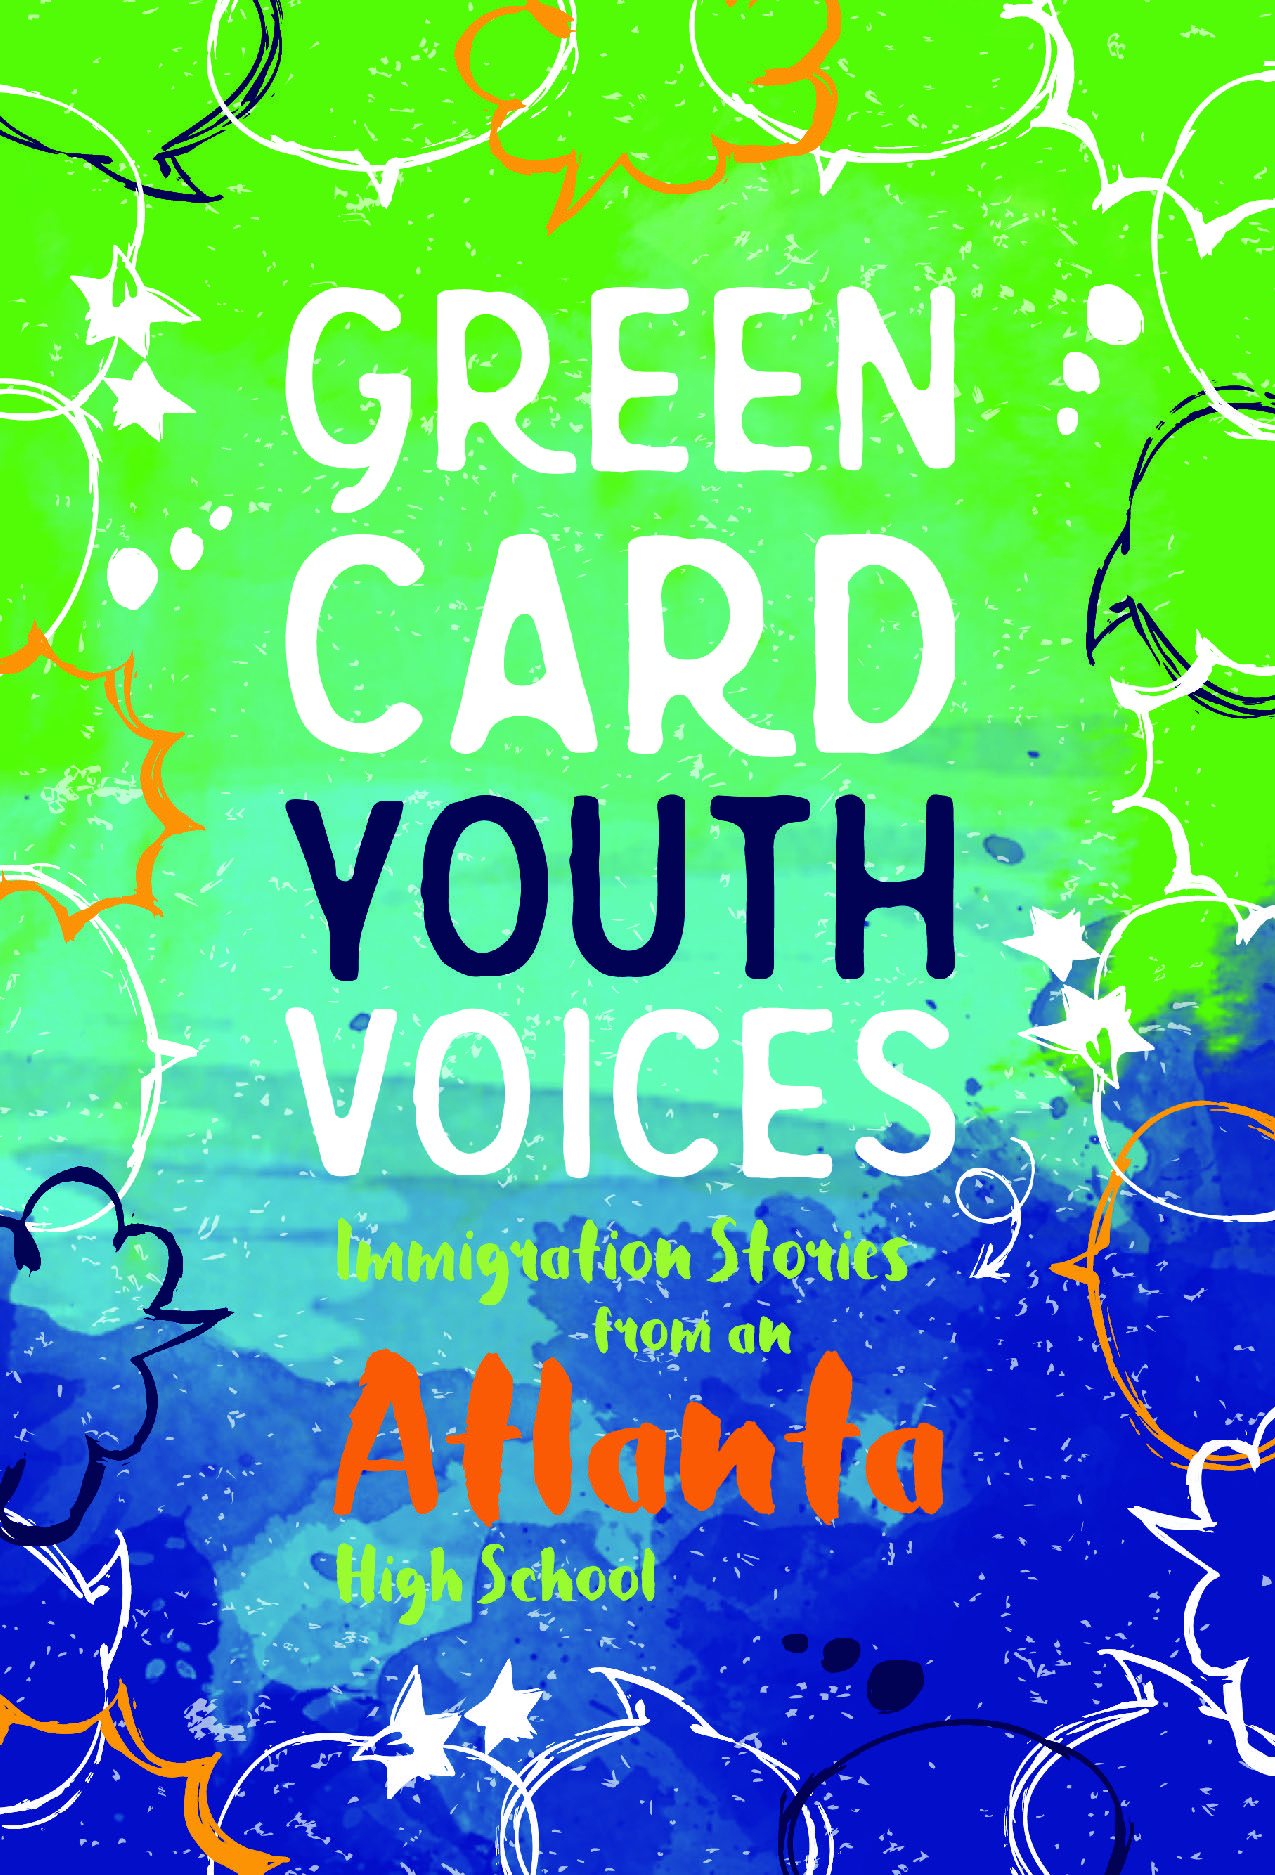 Book Cover for Green Card Youth Voices: Immigration Stories from an Atlanta High School